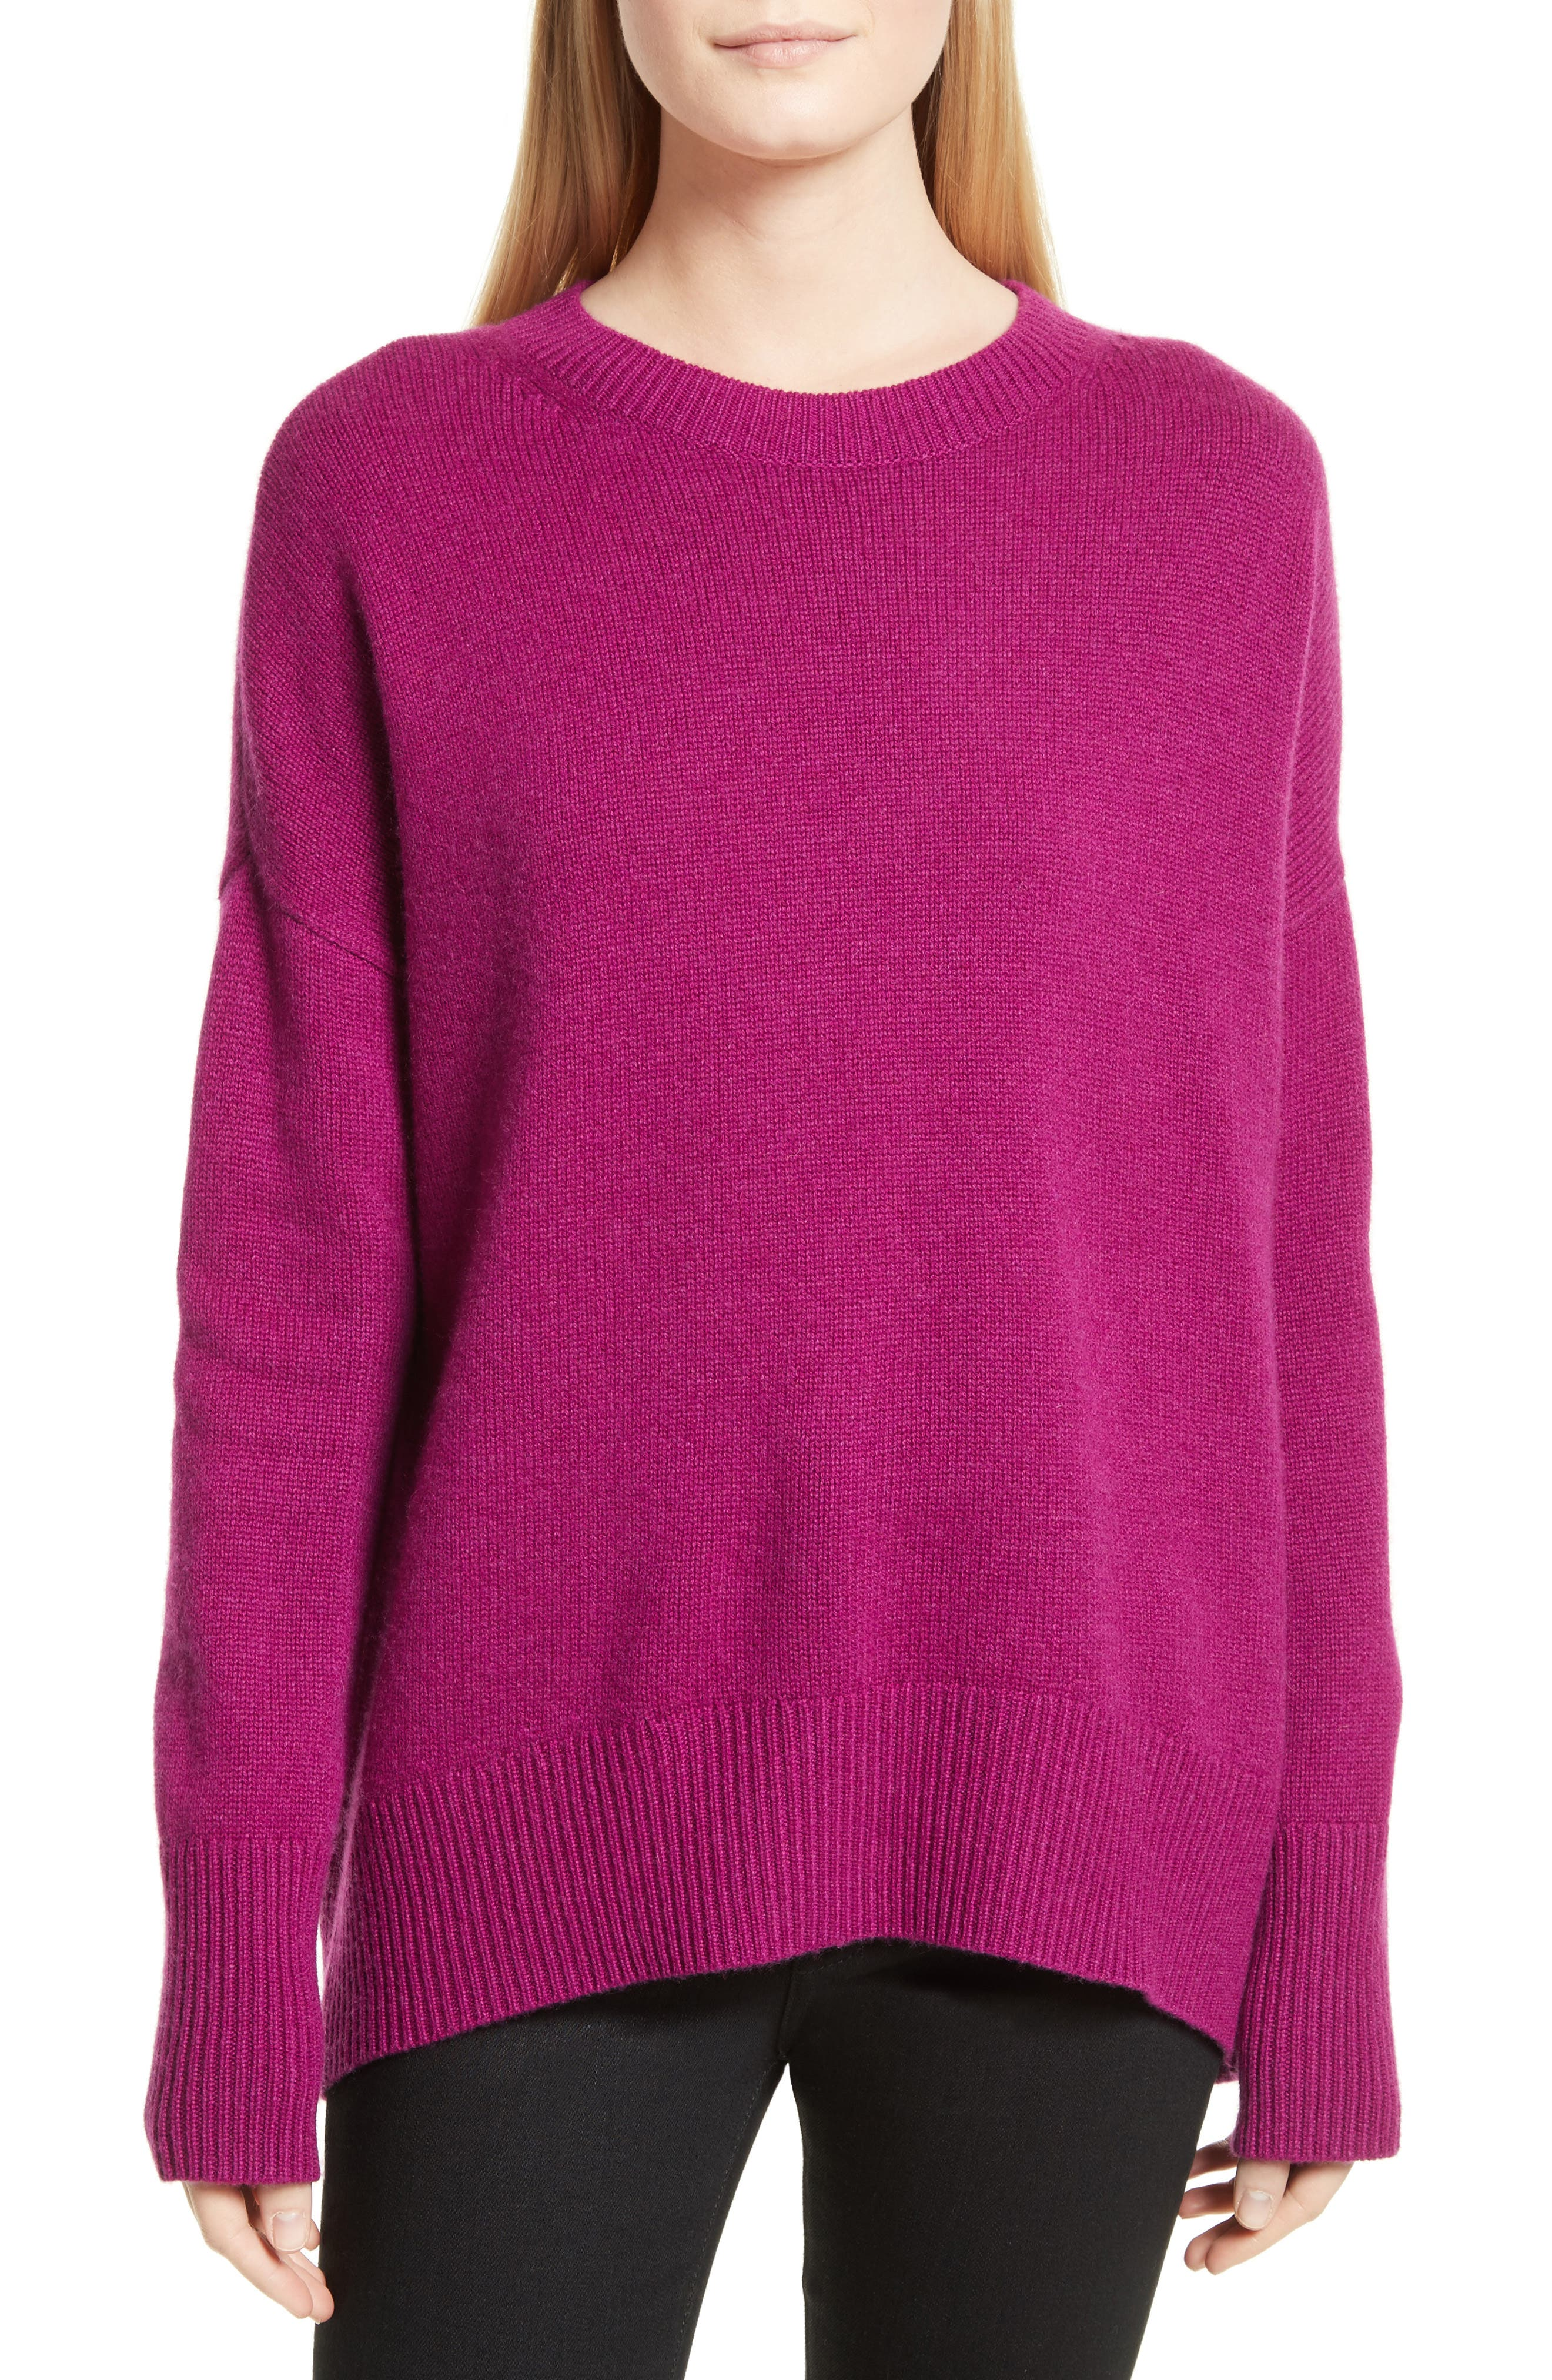 Karenia R Cashmere Sweater,                         Main,                         color, Fuschia